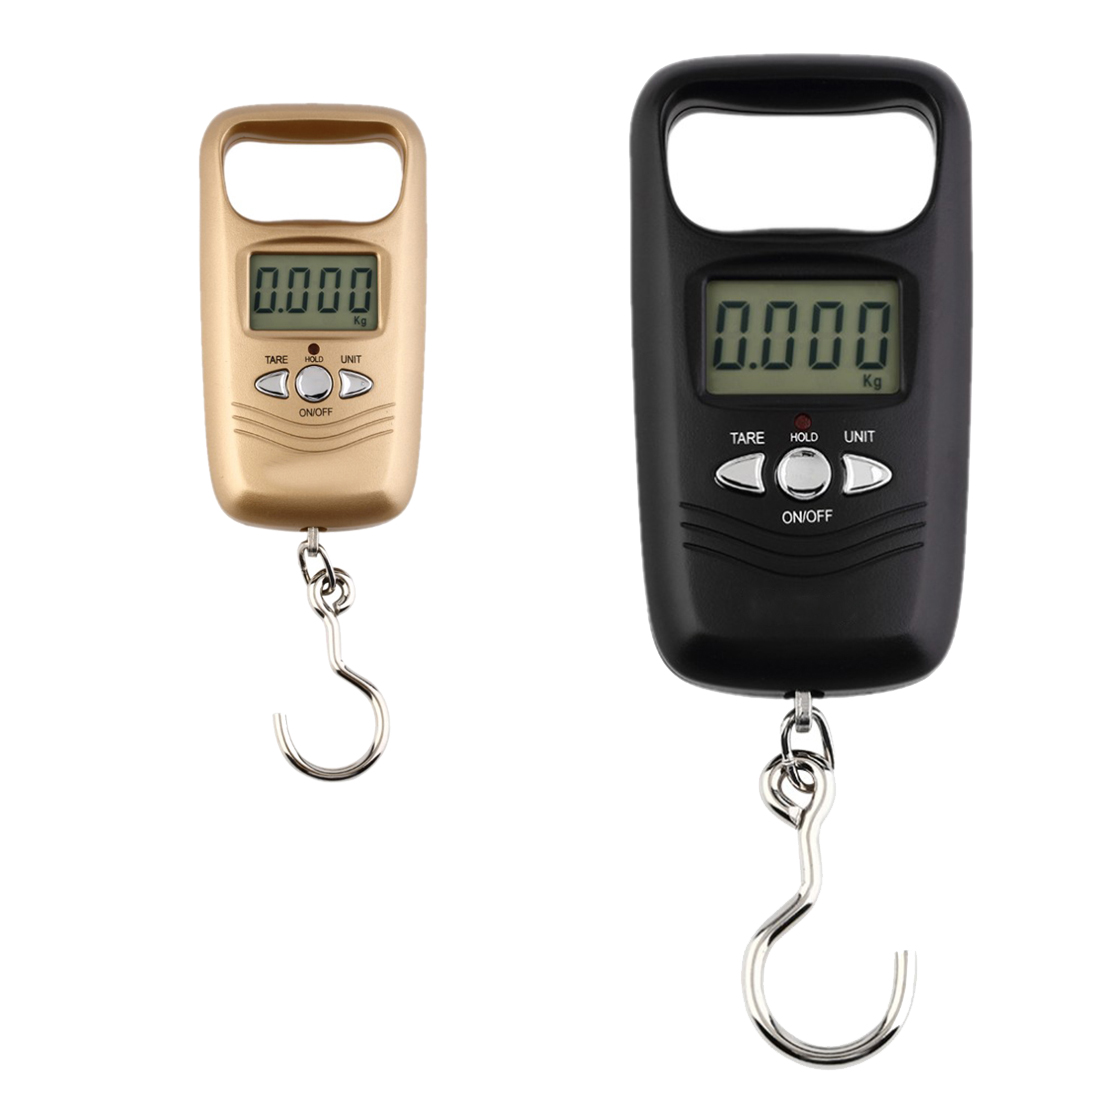 50kg/1g LCD Digital Hanging Luggage Weighting Fishing Hook Scale Electron Pocket Portable Scale asics кроссовки gel lyte 10 4646 ss18